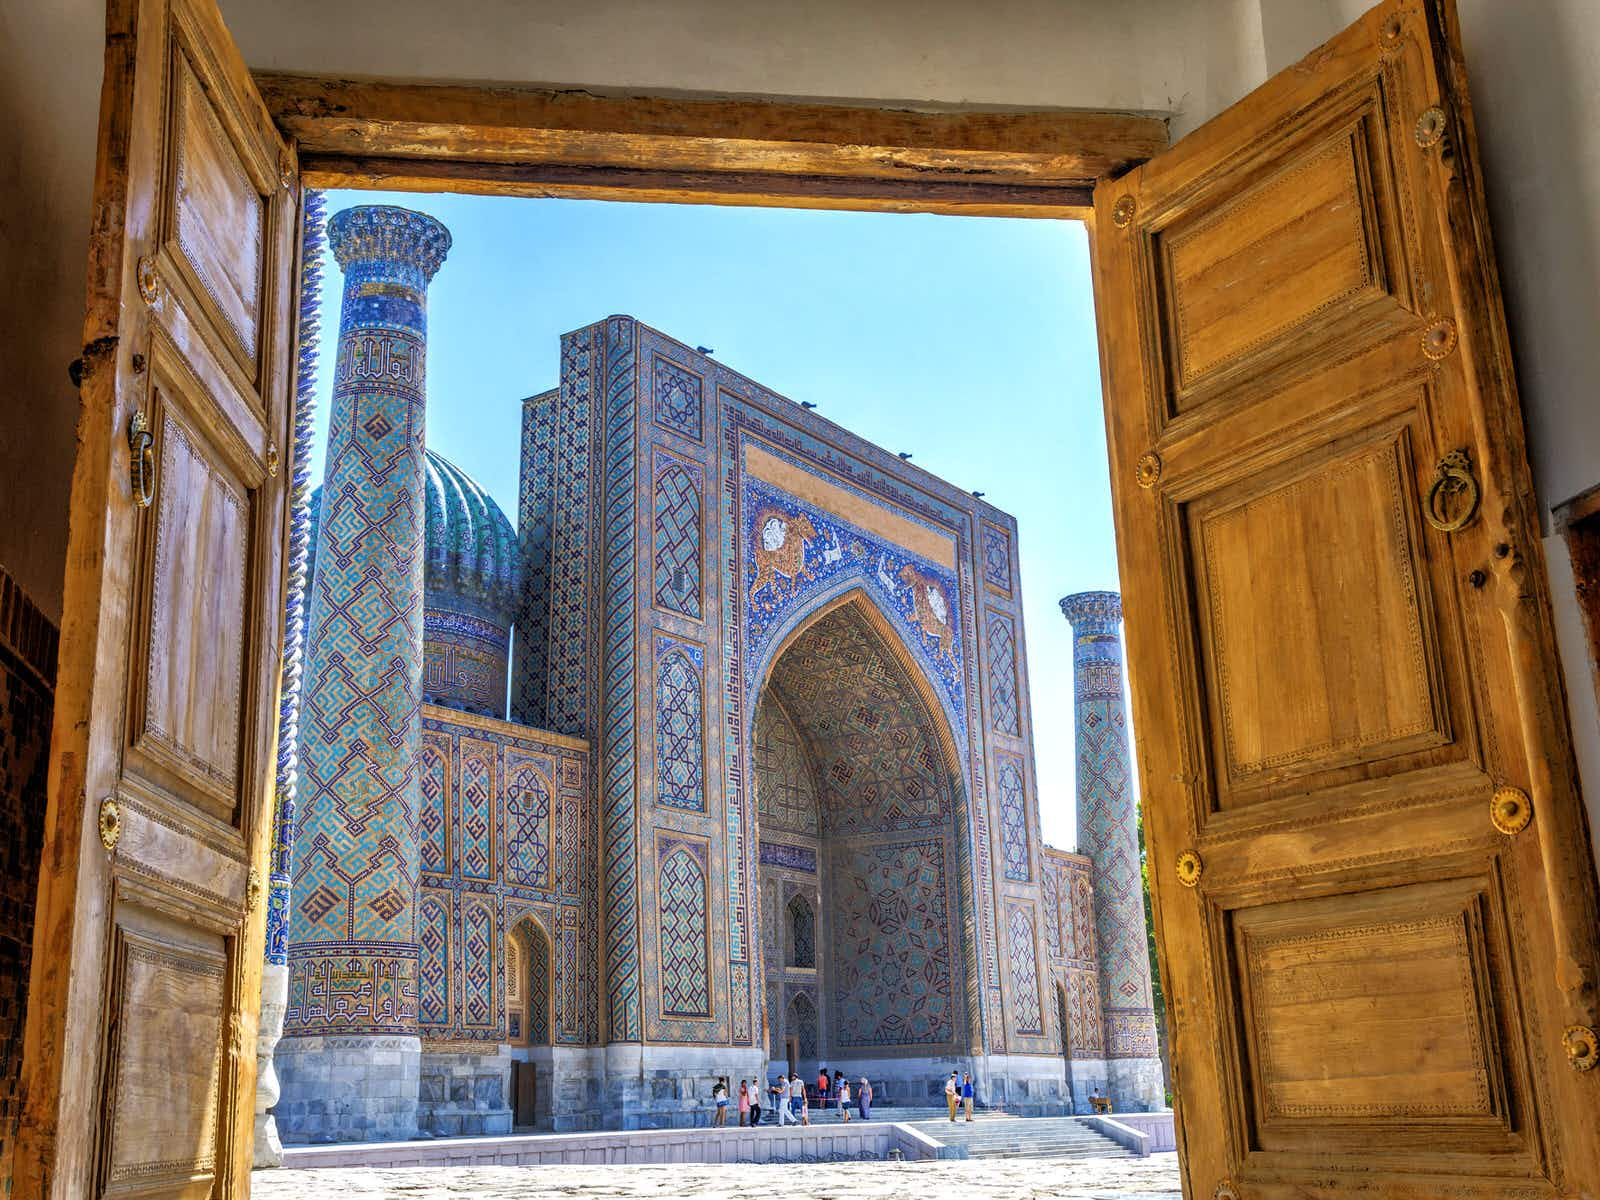 Wooden doors open onto a sunny blue-tiled Islamic square. Uzbekistan's new policies are making it easier to visit its stunning monuments, such as the Registan © Dinozzzaver / Shutterstock